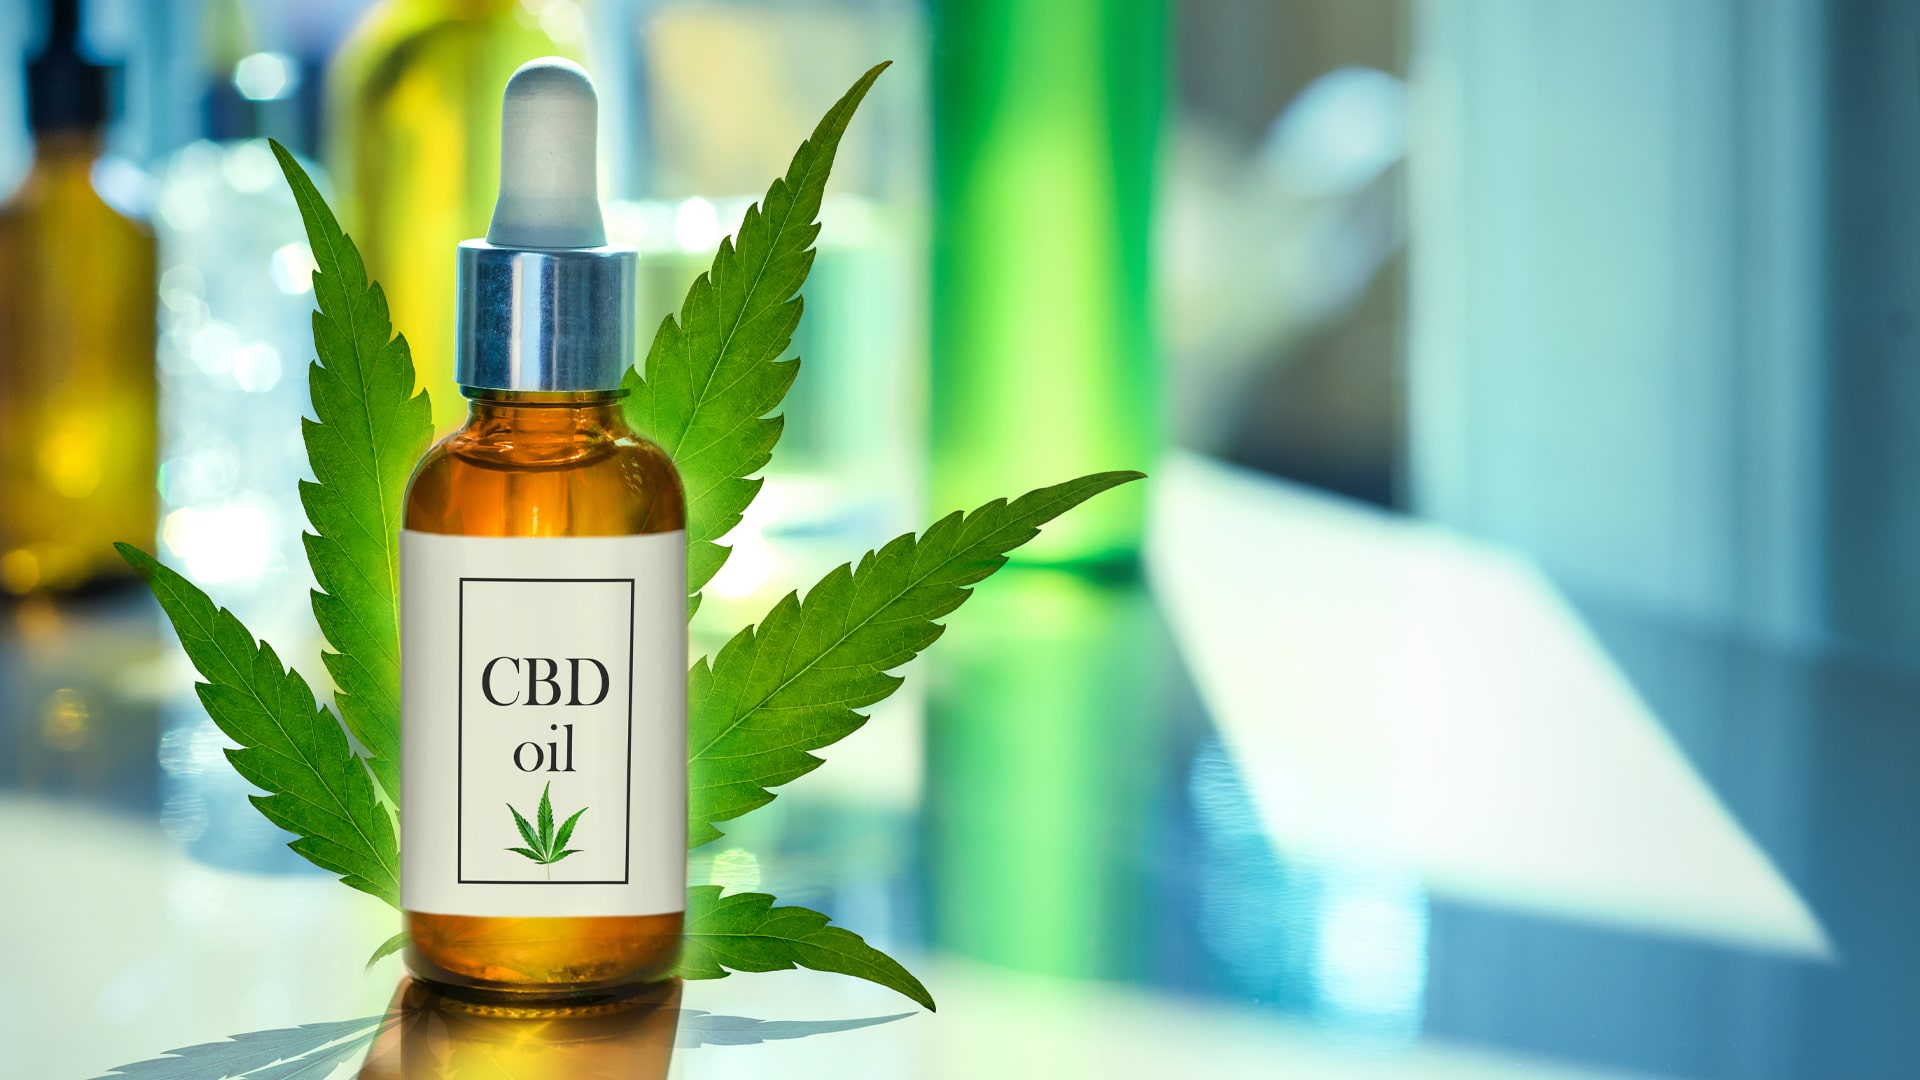 What's Next for CBD in the UK